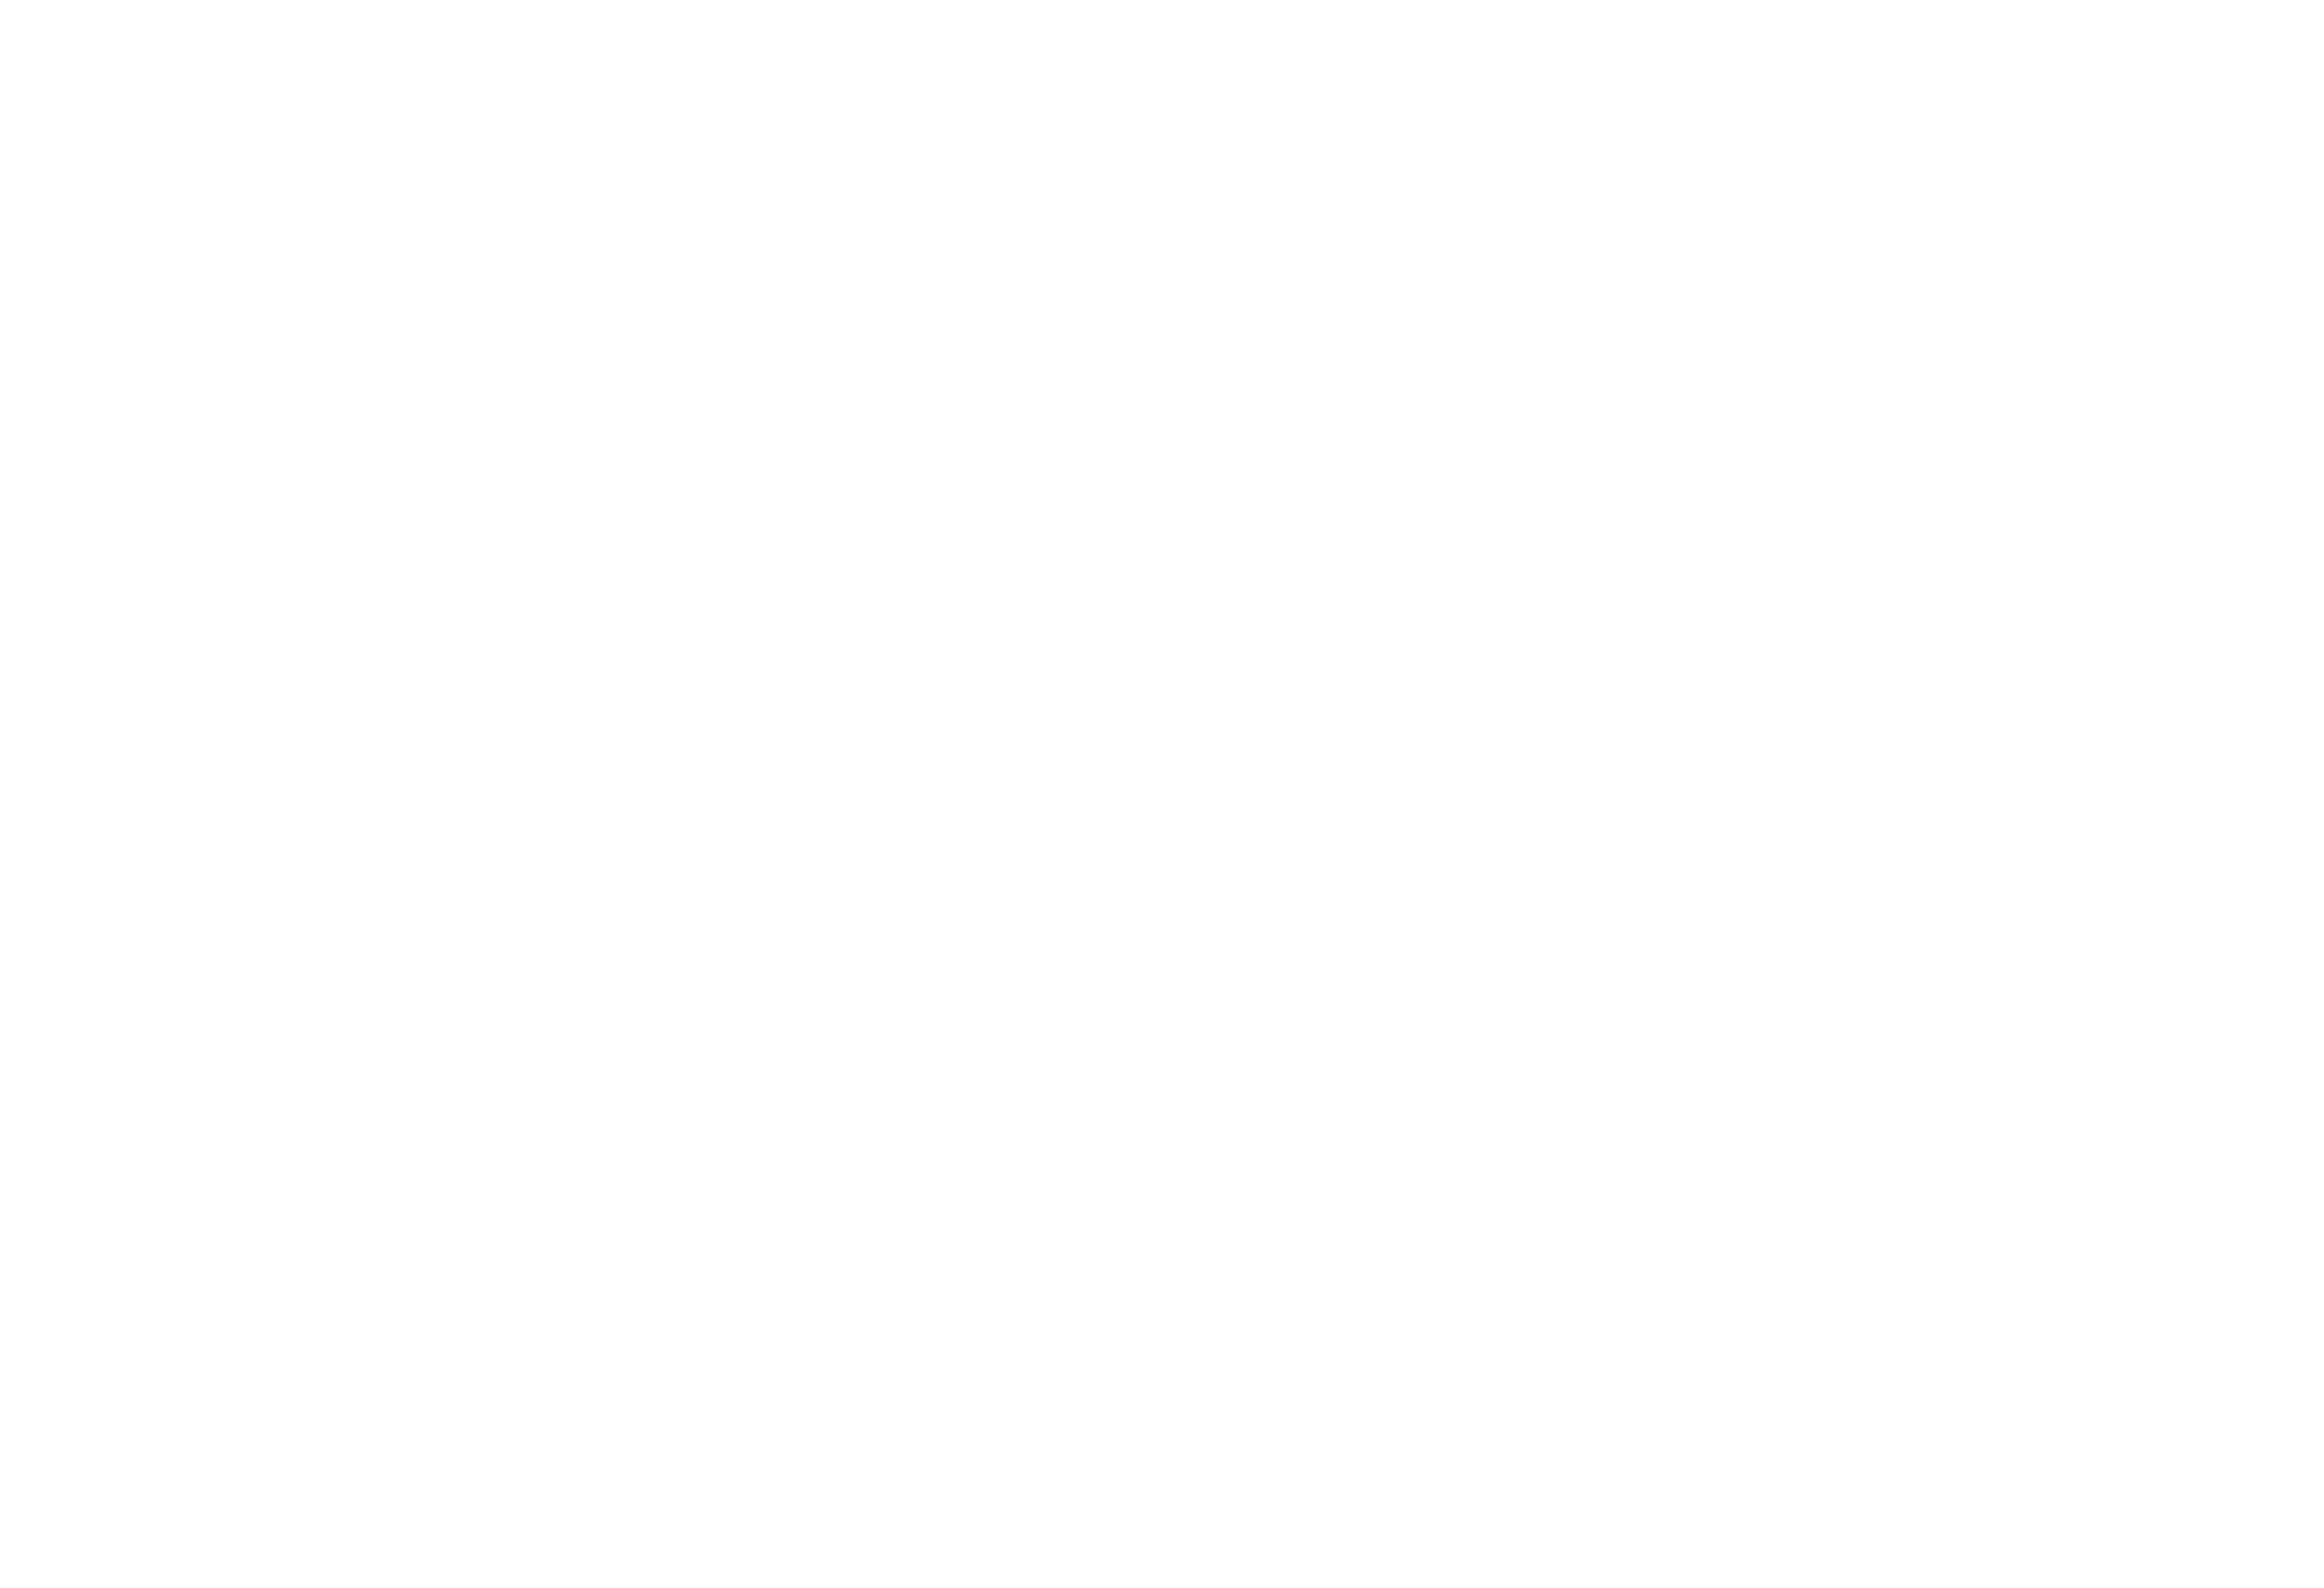 CCG-Residential-White-Tag-Vertical.png